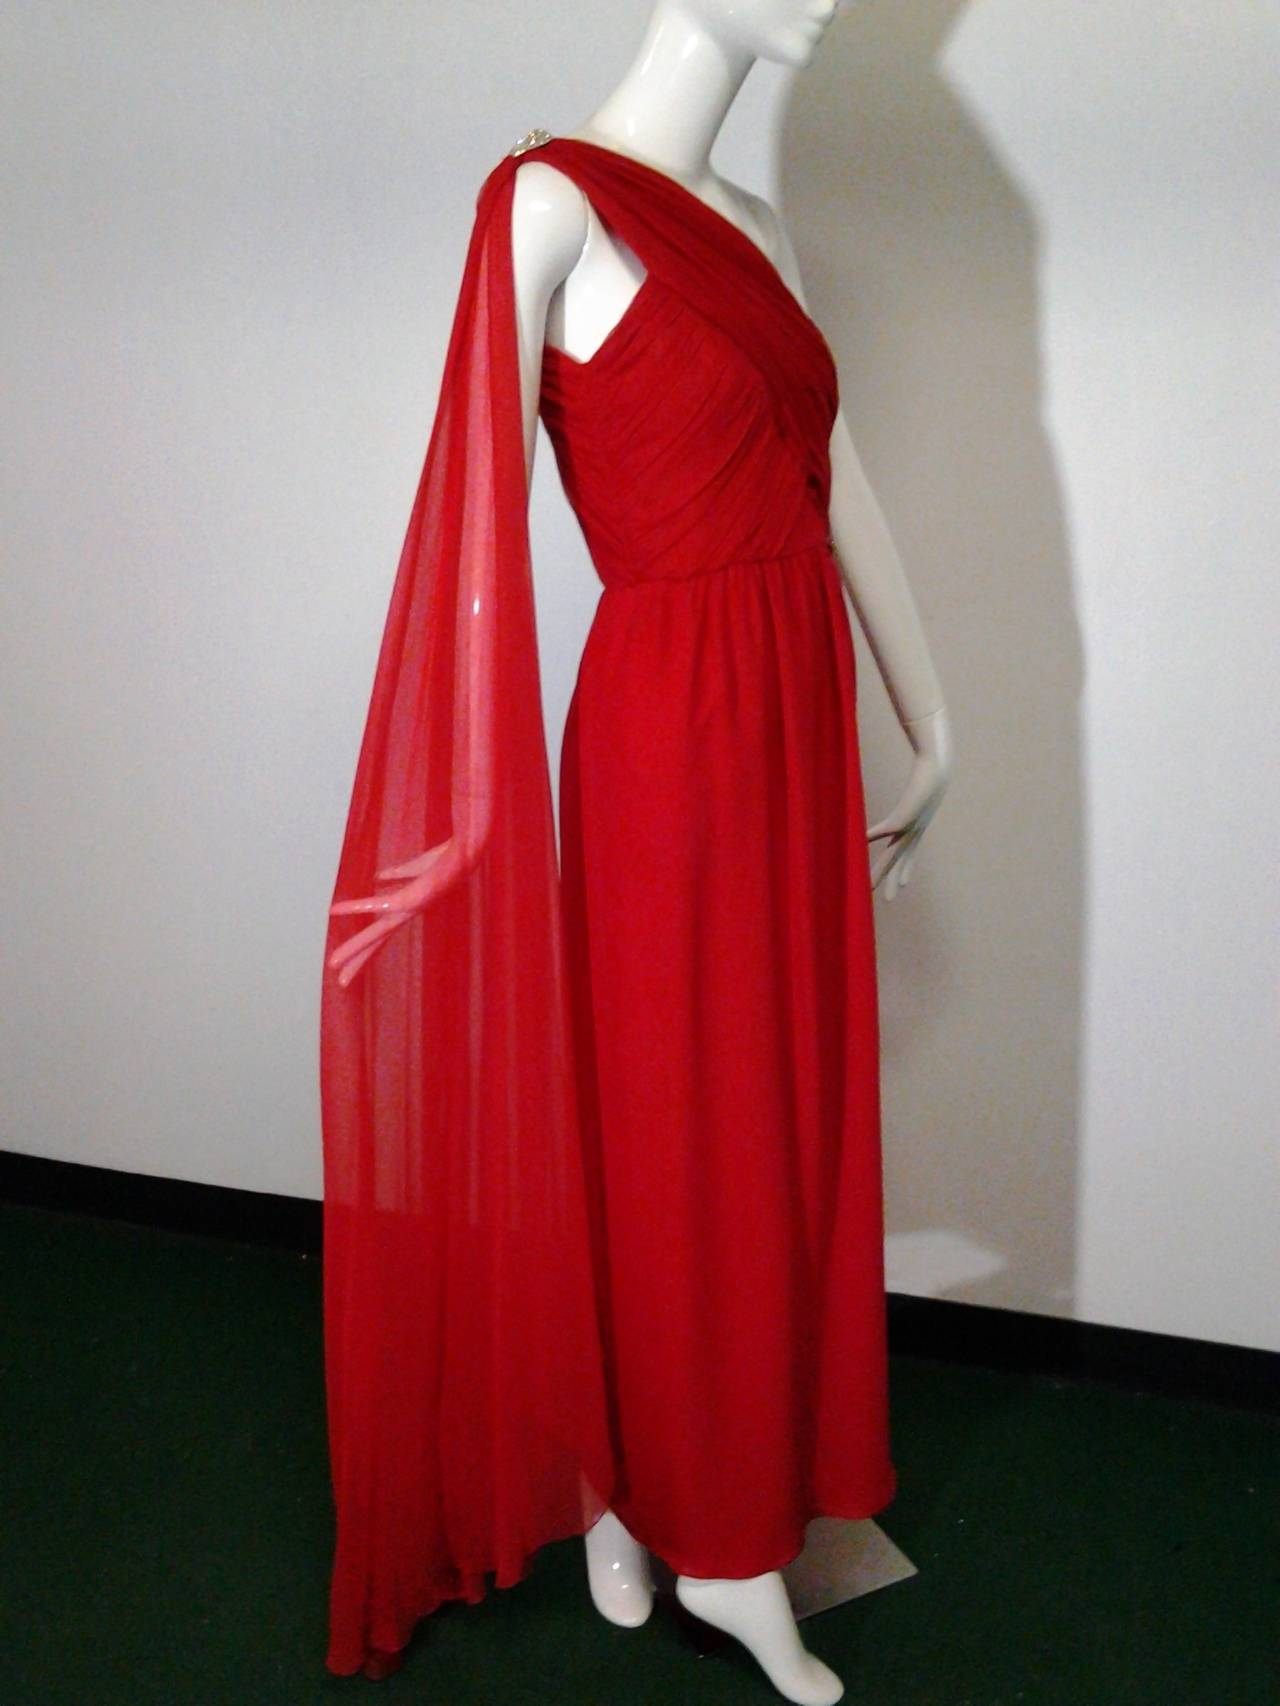 1980s Carolyne Roehm Vivid Red Silk Chiffon One-Shoulder Goddess Gown 2